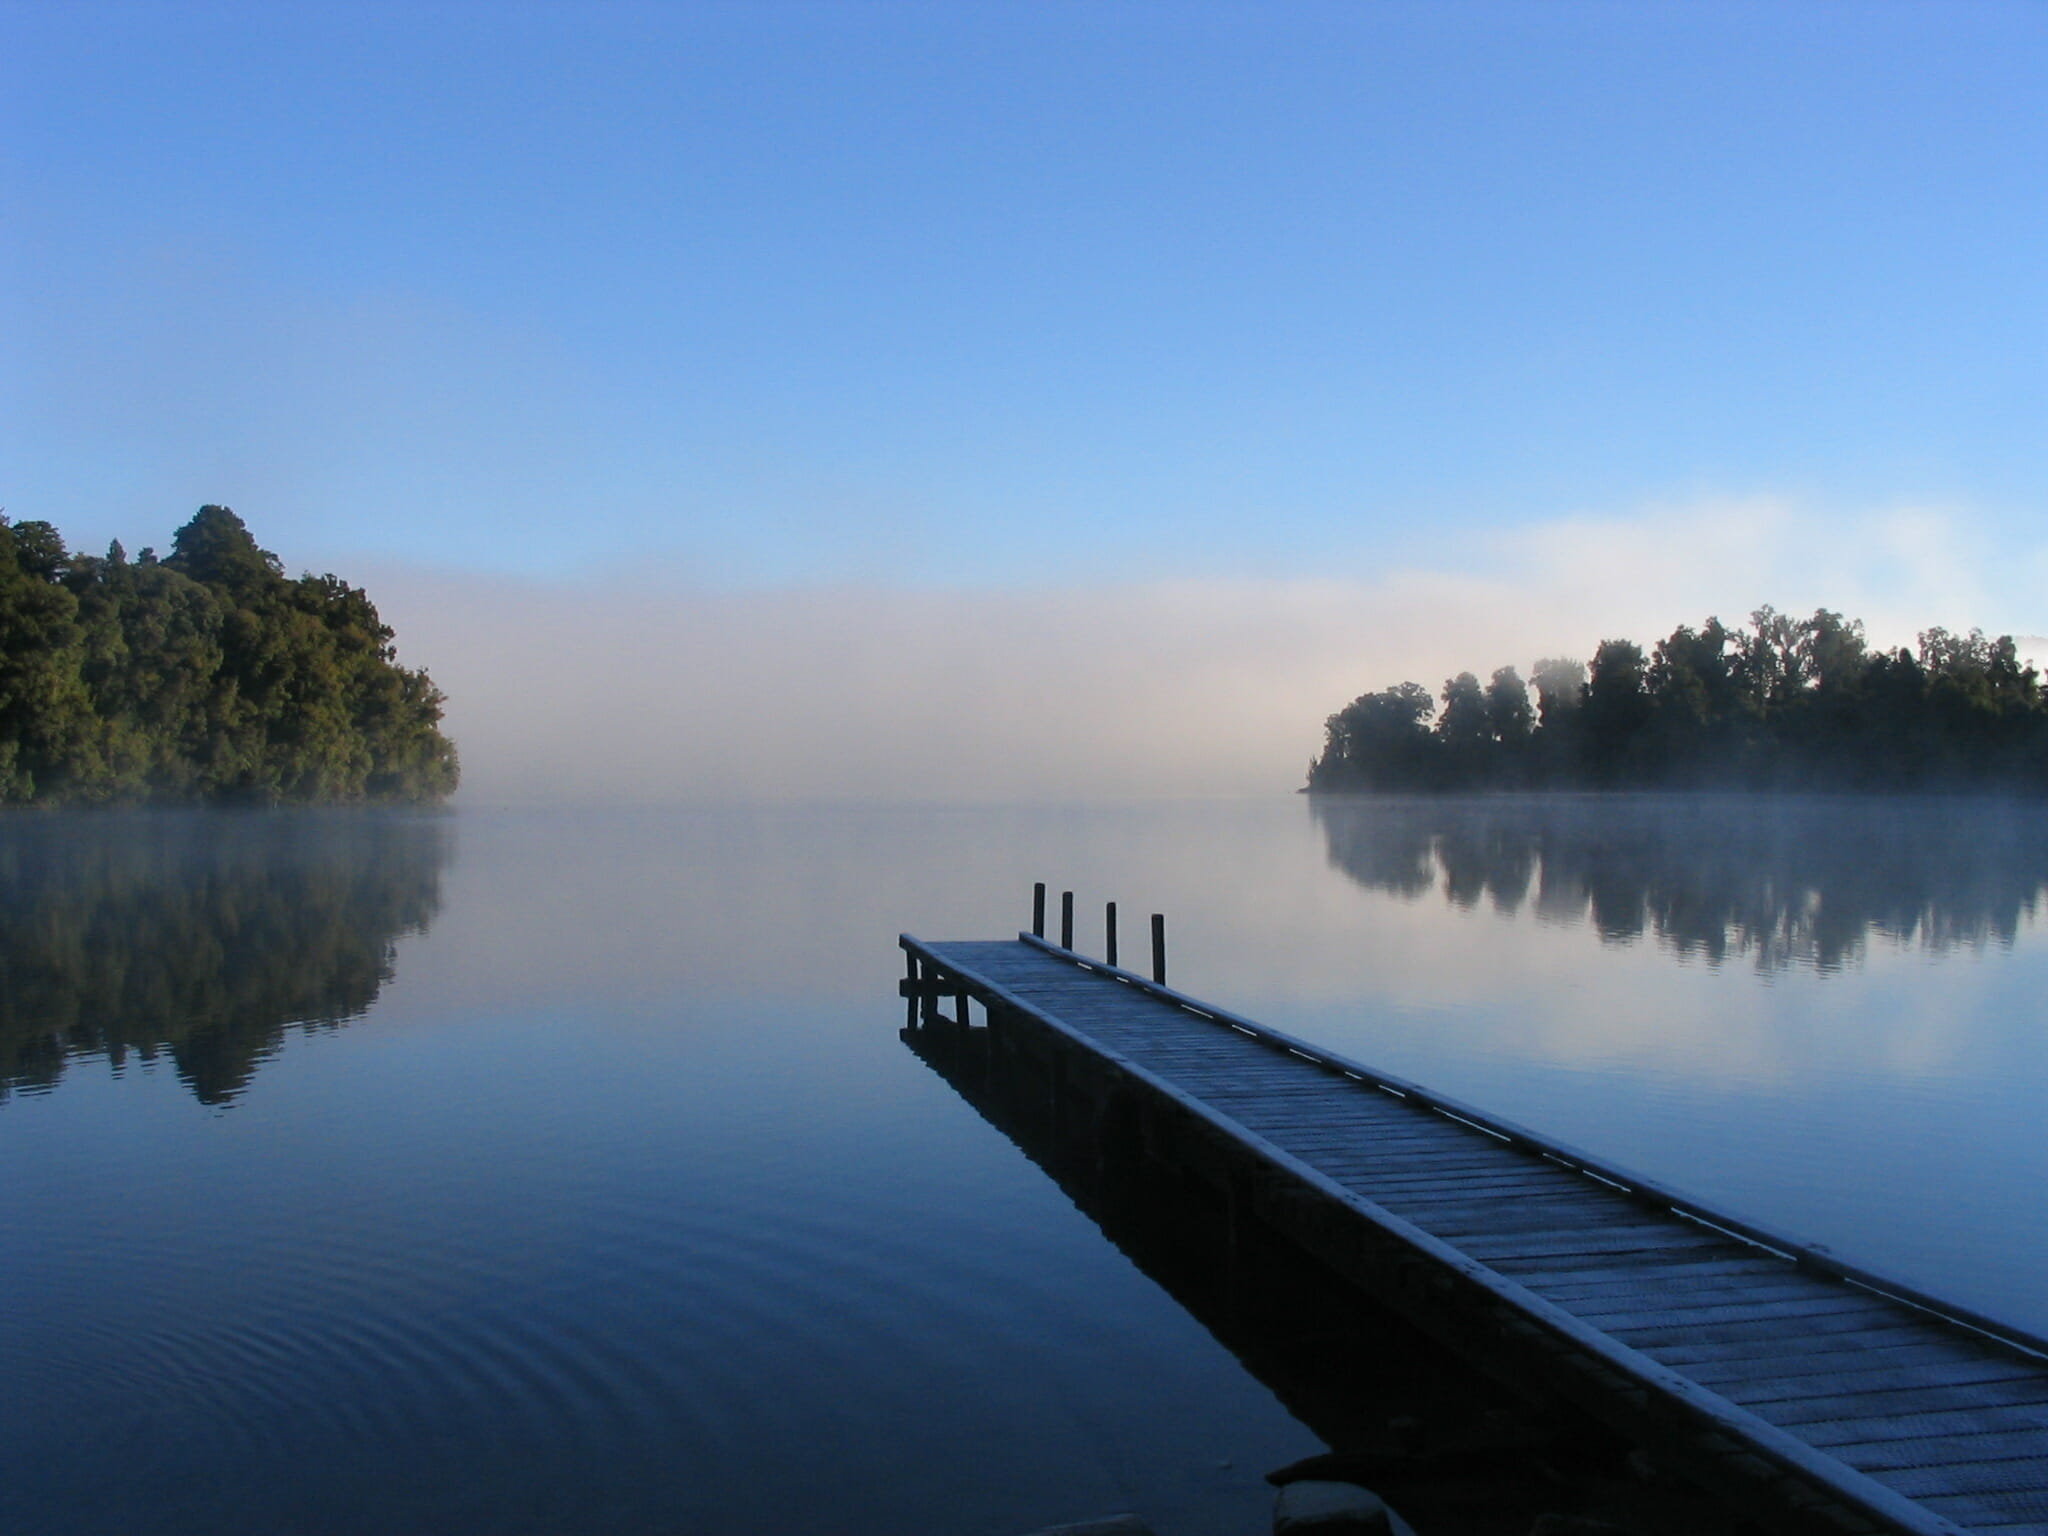 Dock on lake with trees on either side.